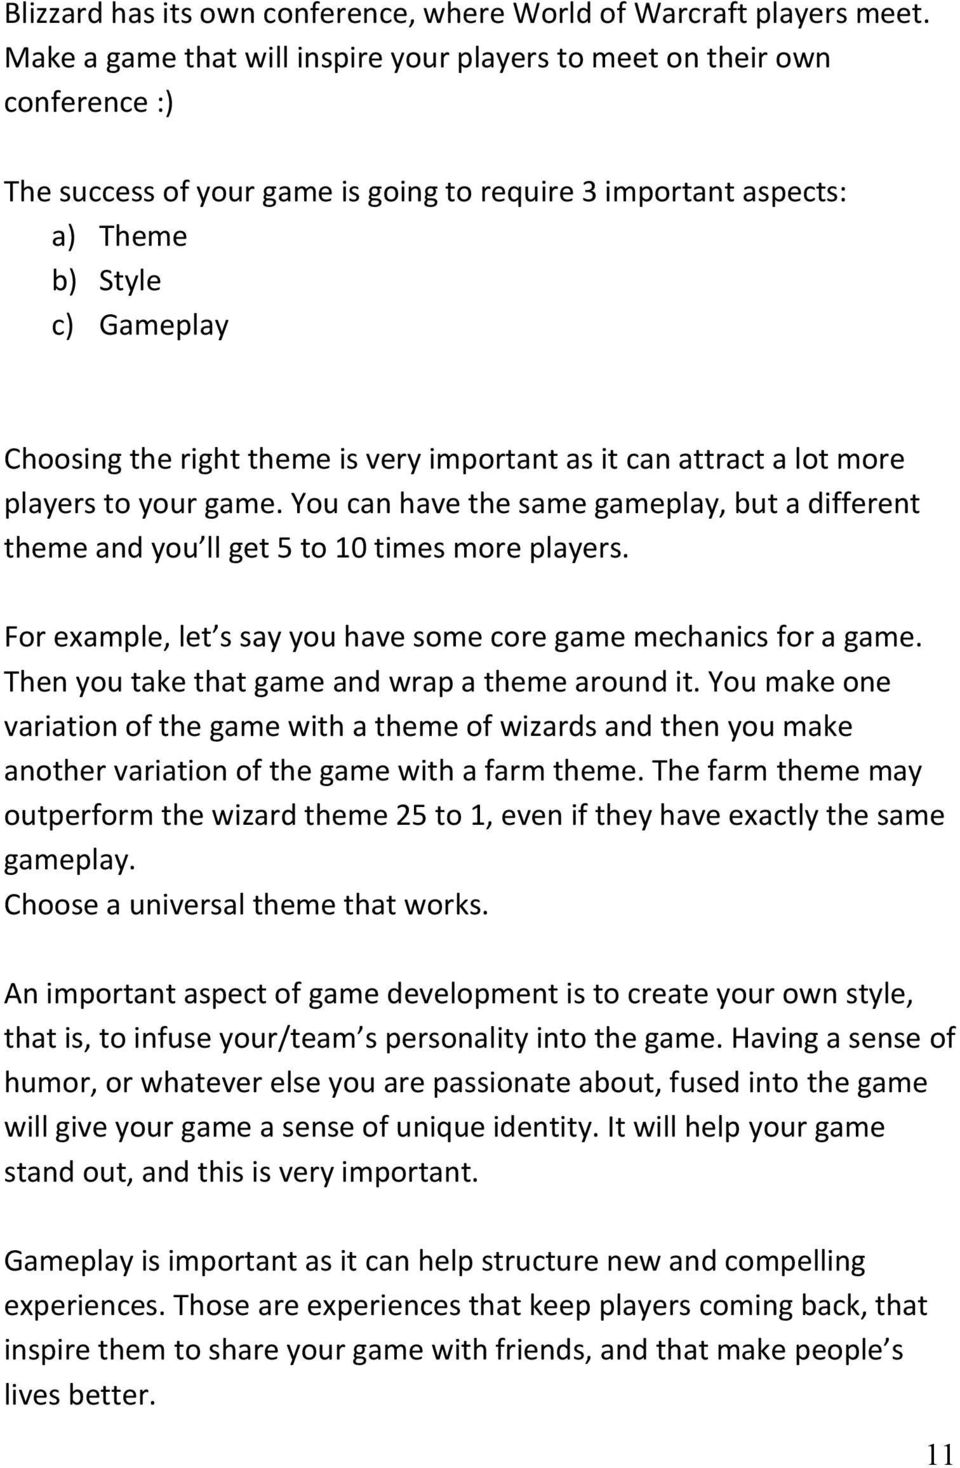 is very important as it can attract a lot more players to your game. You can have the same gameplay, but a different theme and you ll get 5 to 10 times more players.